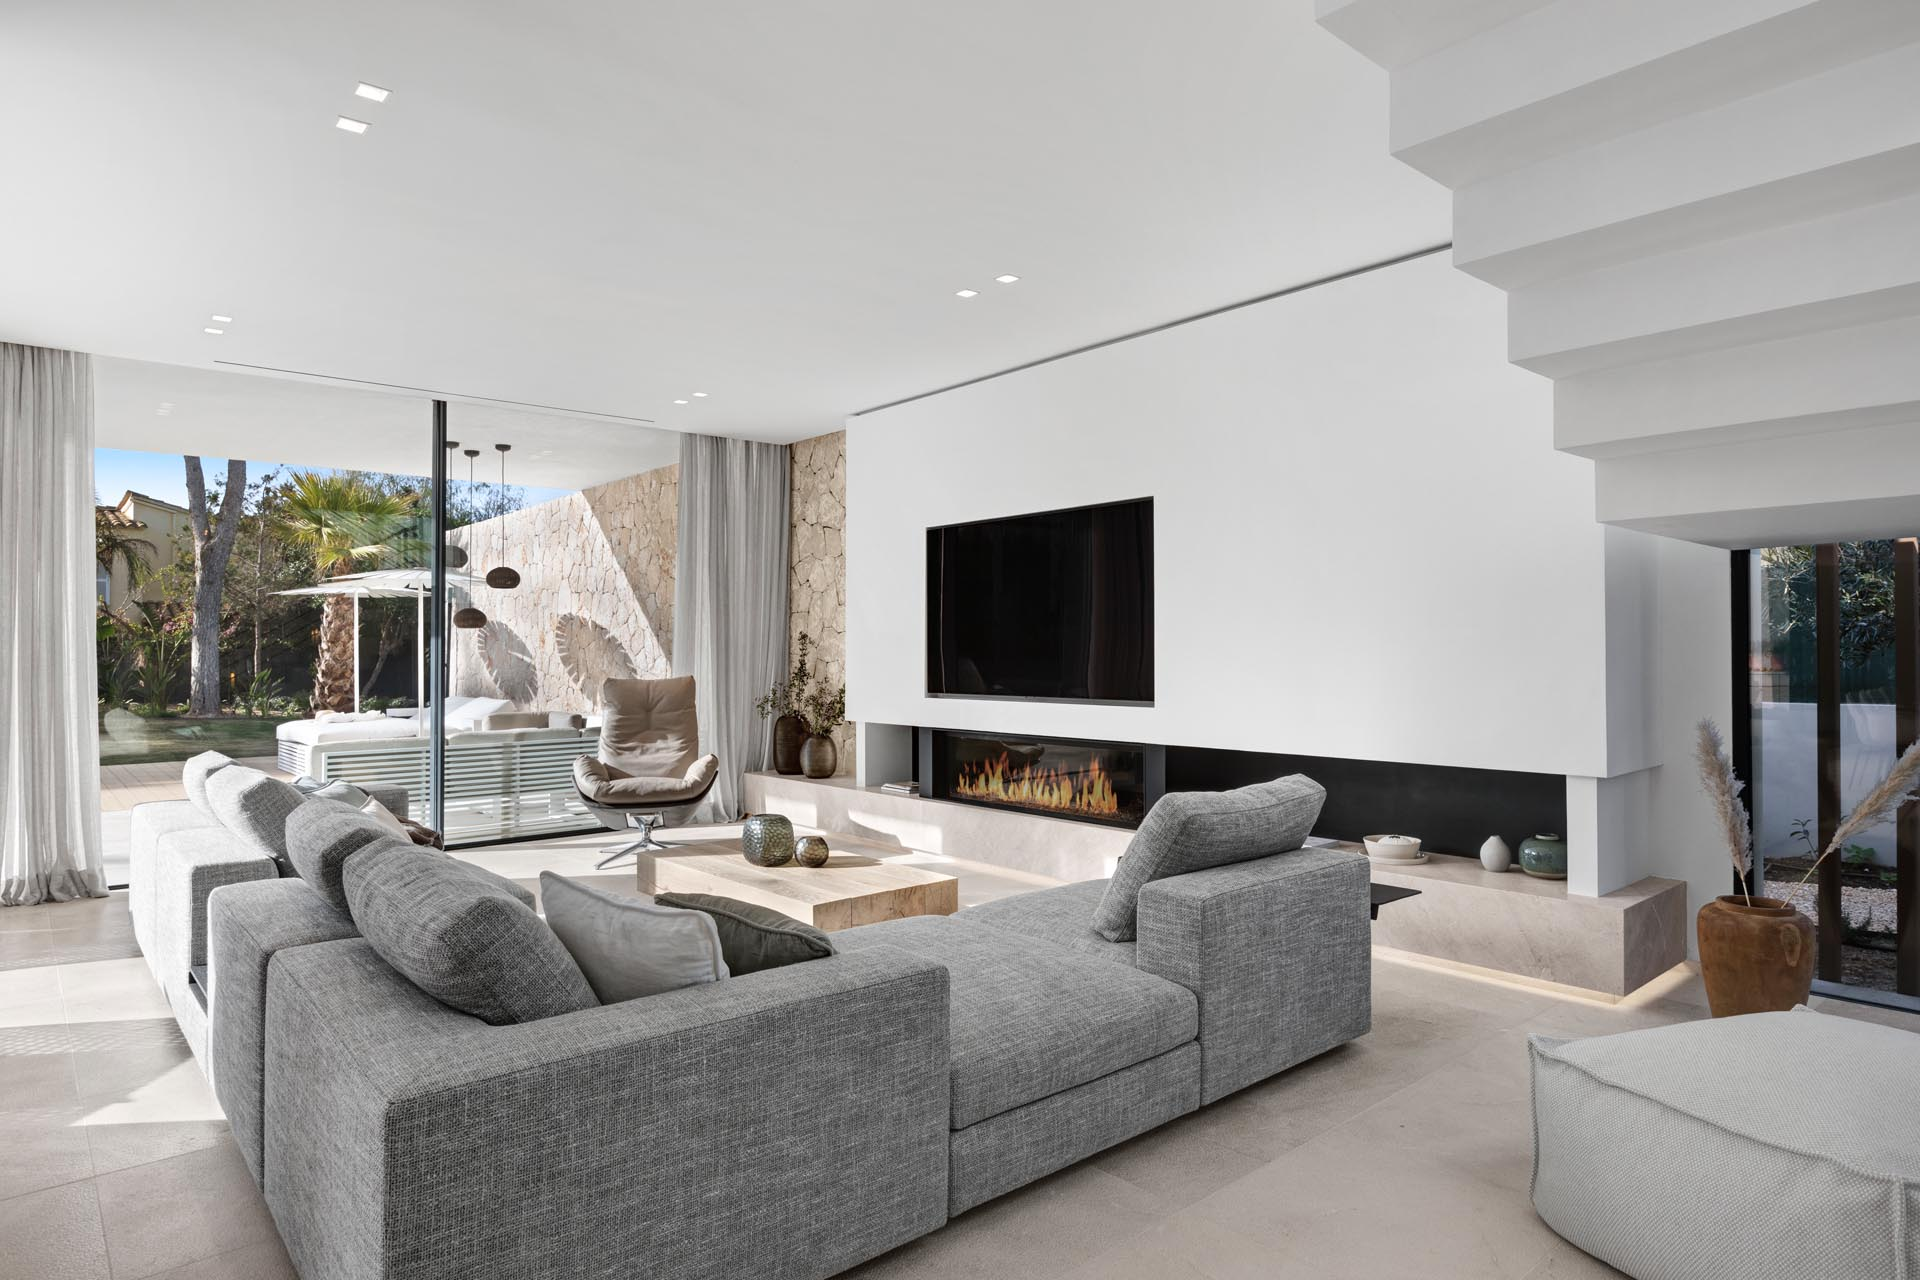 In this modern living room, the L-shaped gray sofa is focused on the linear fireplace with the TV above it. Underneath, there's a Balearic gray limestone hearth with hidden lighting that highlights the floor.